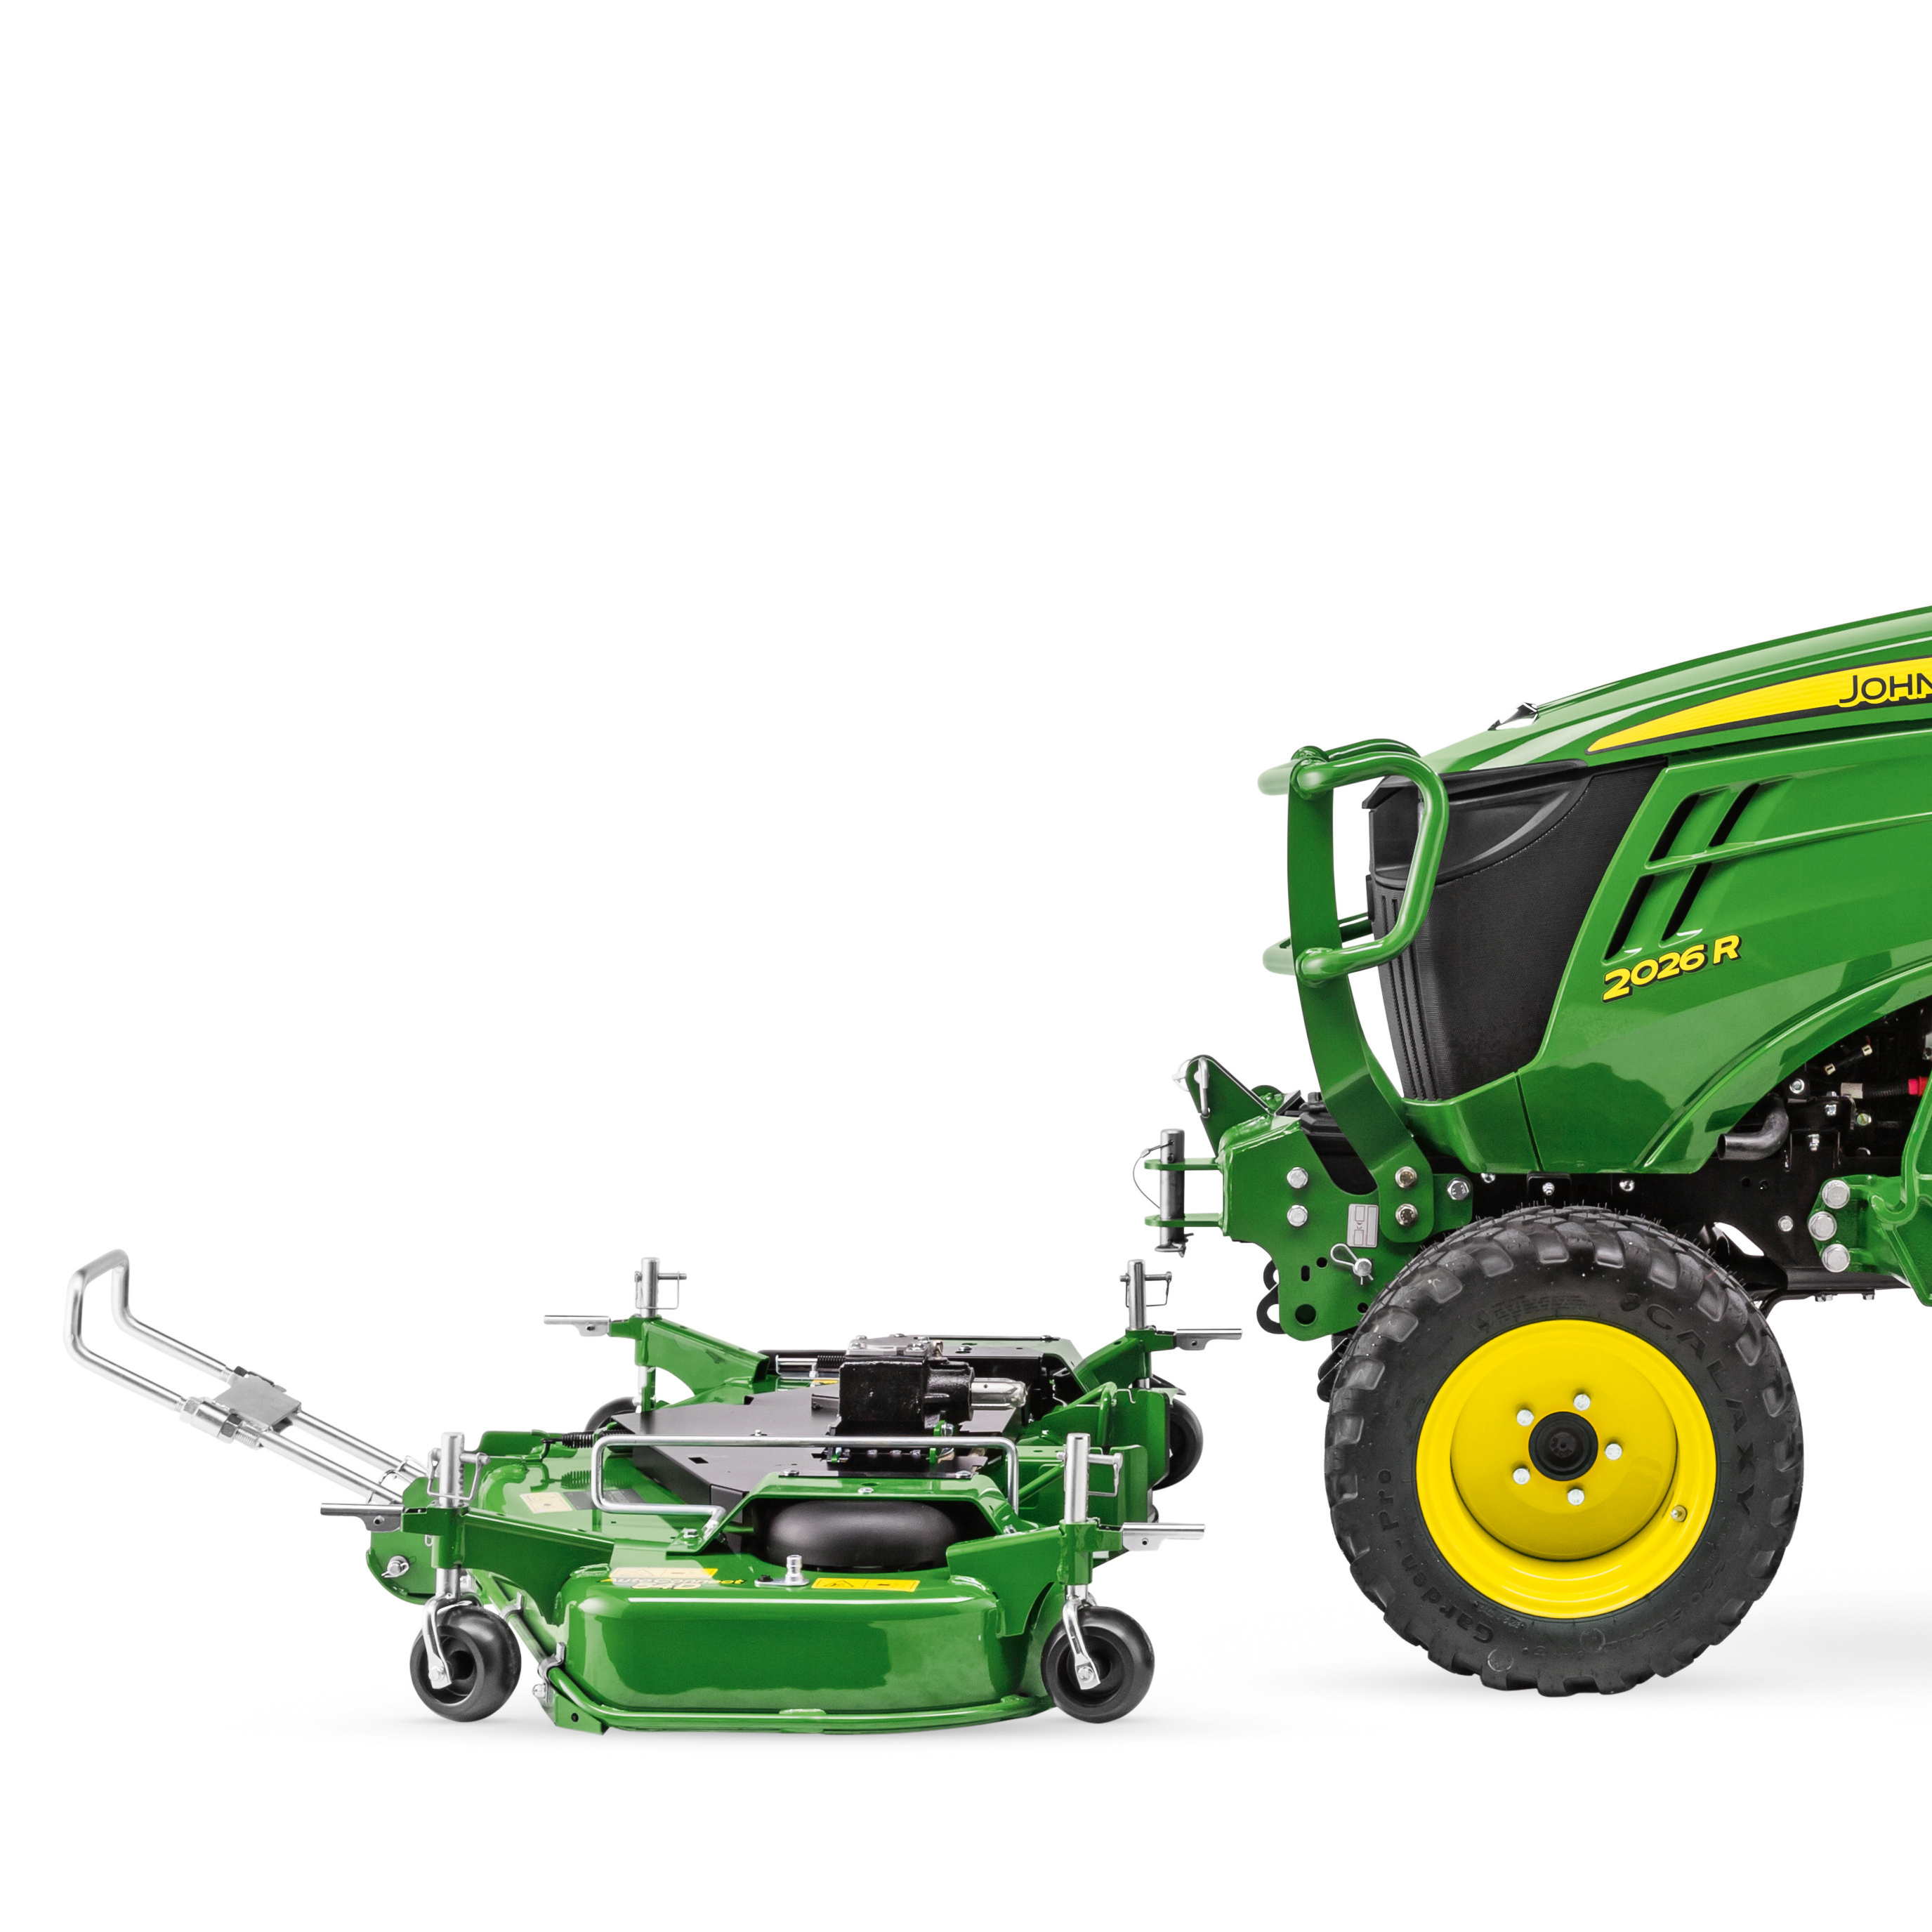 John Deere Compact Tractor Special Offers | Papé Machinery